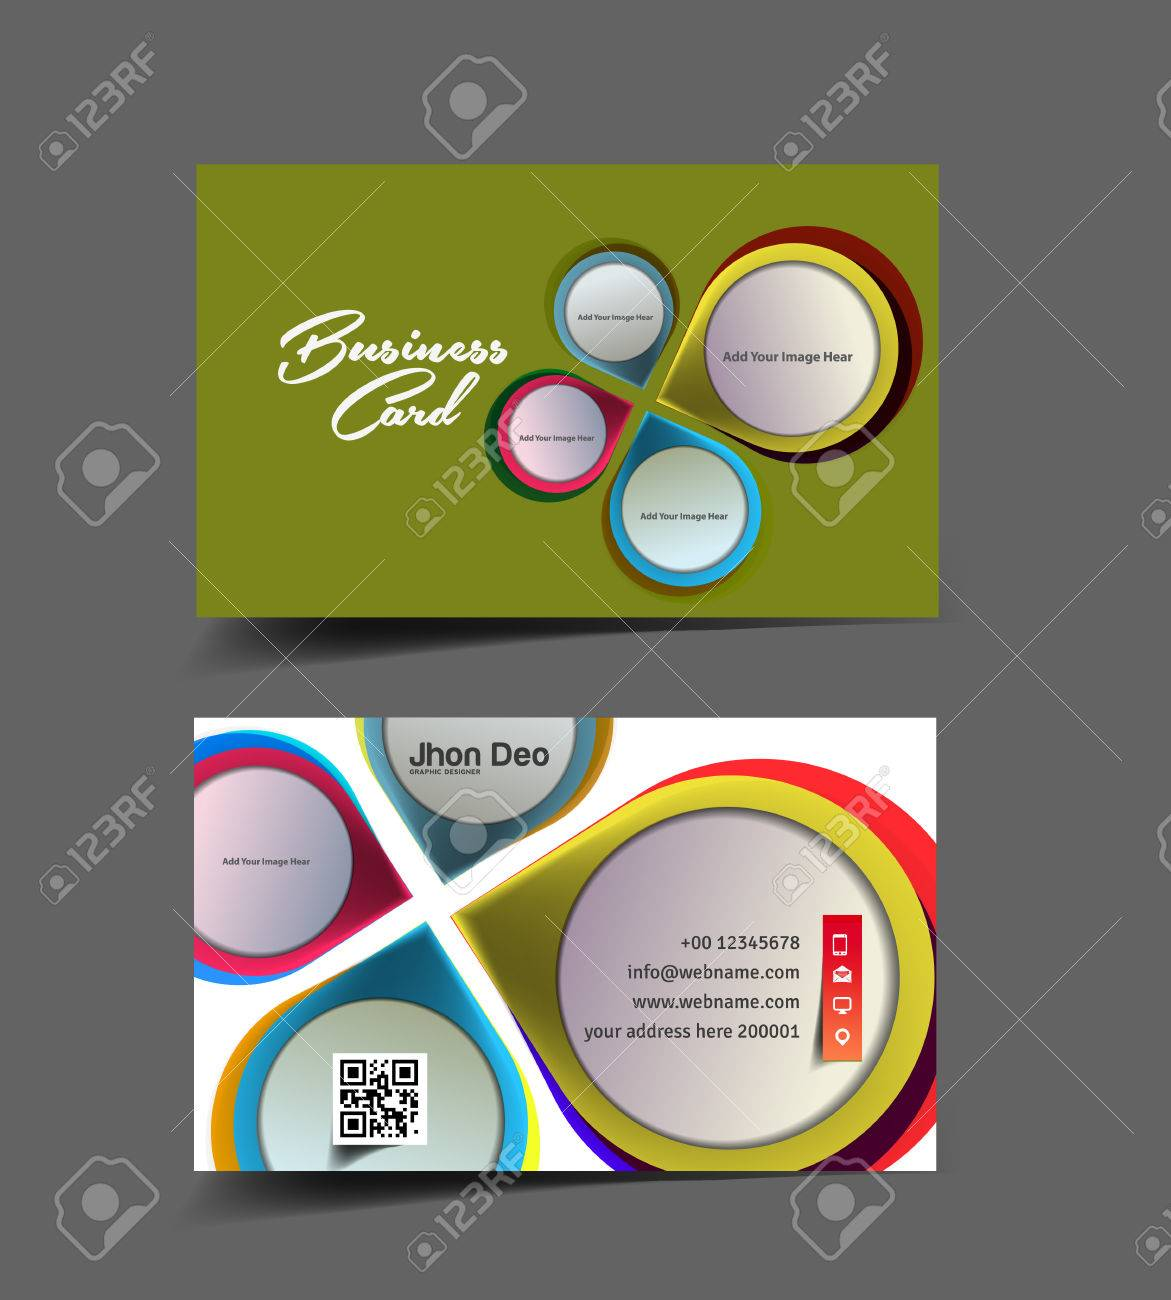 Interior Designer Business Card Vector Design Royalty Free Cliparts Vectors And Stock Illustration Image 26483374